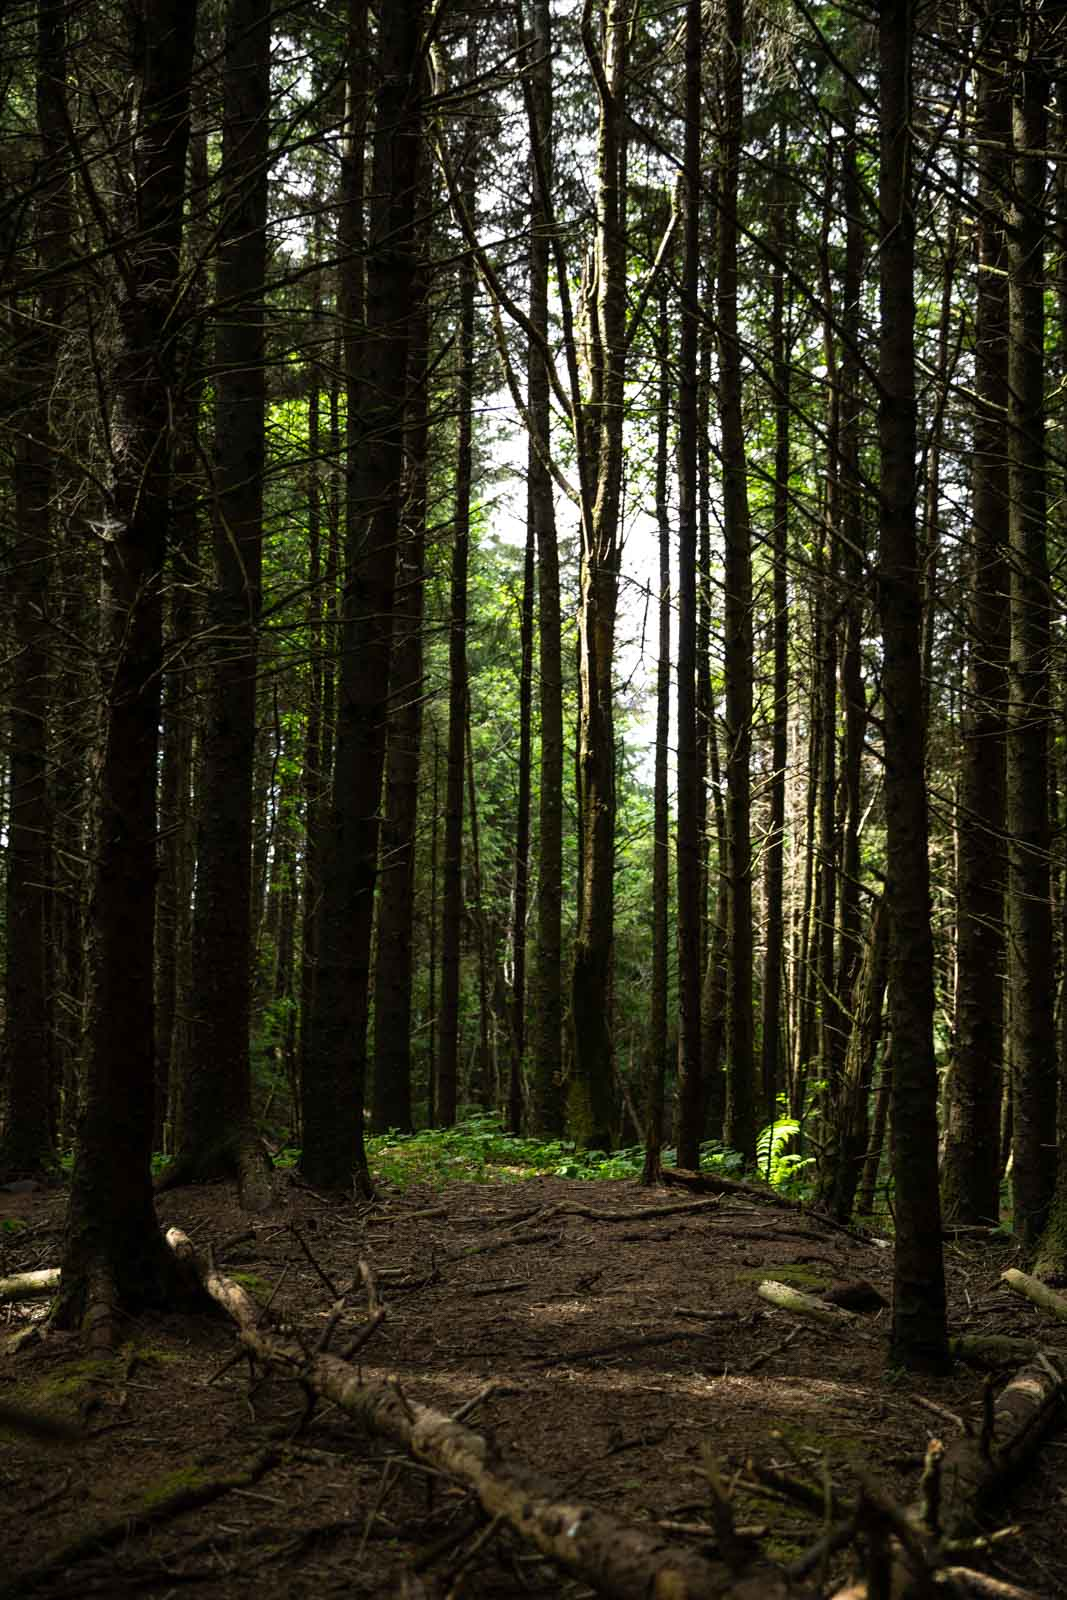 Hiking and camping on the Oregon Coast - forest views